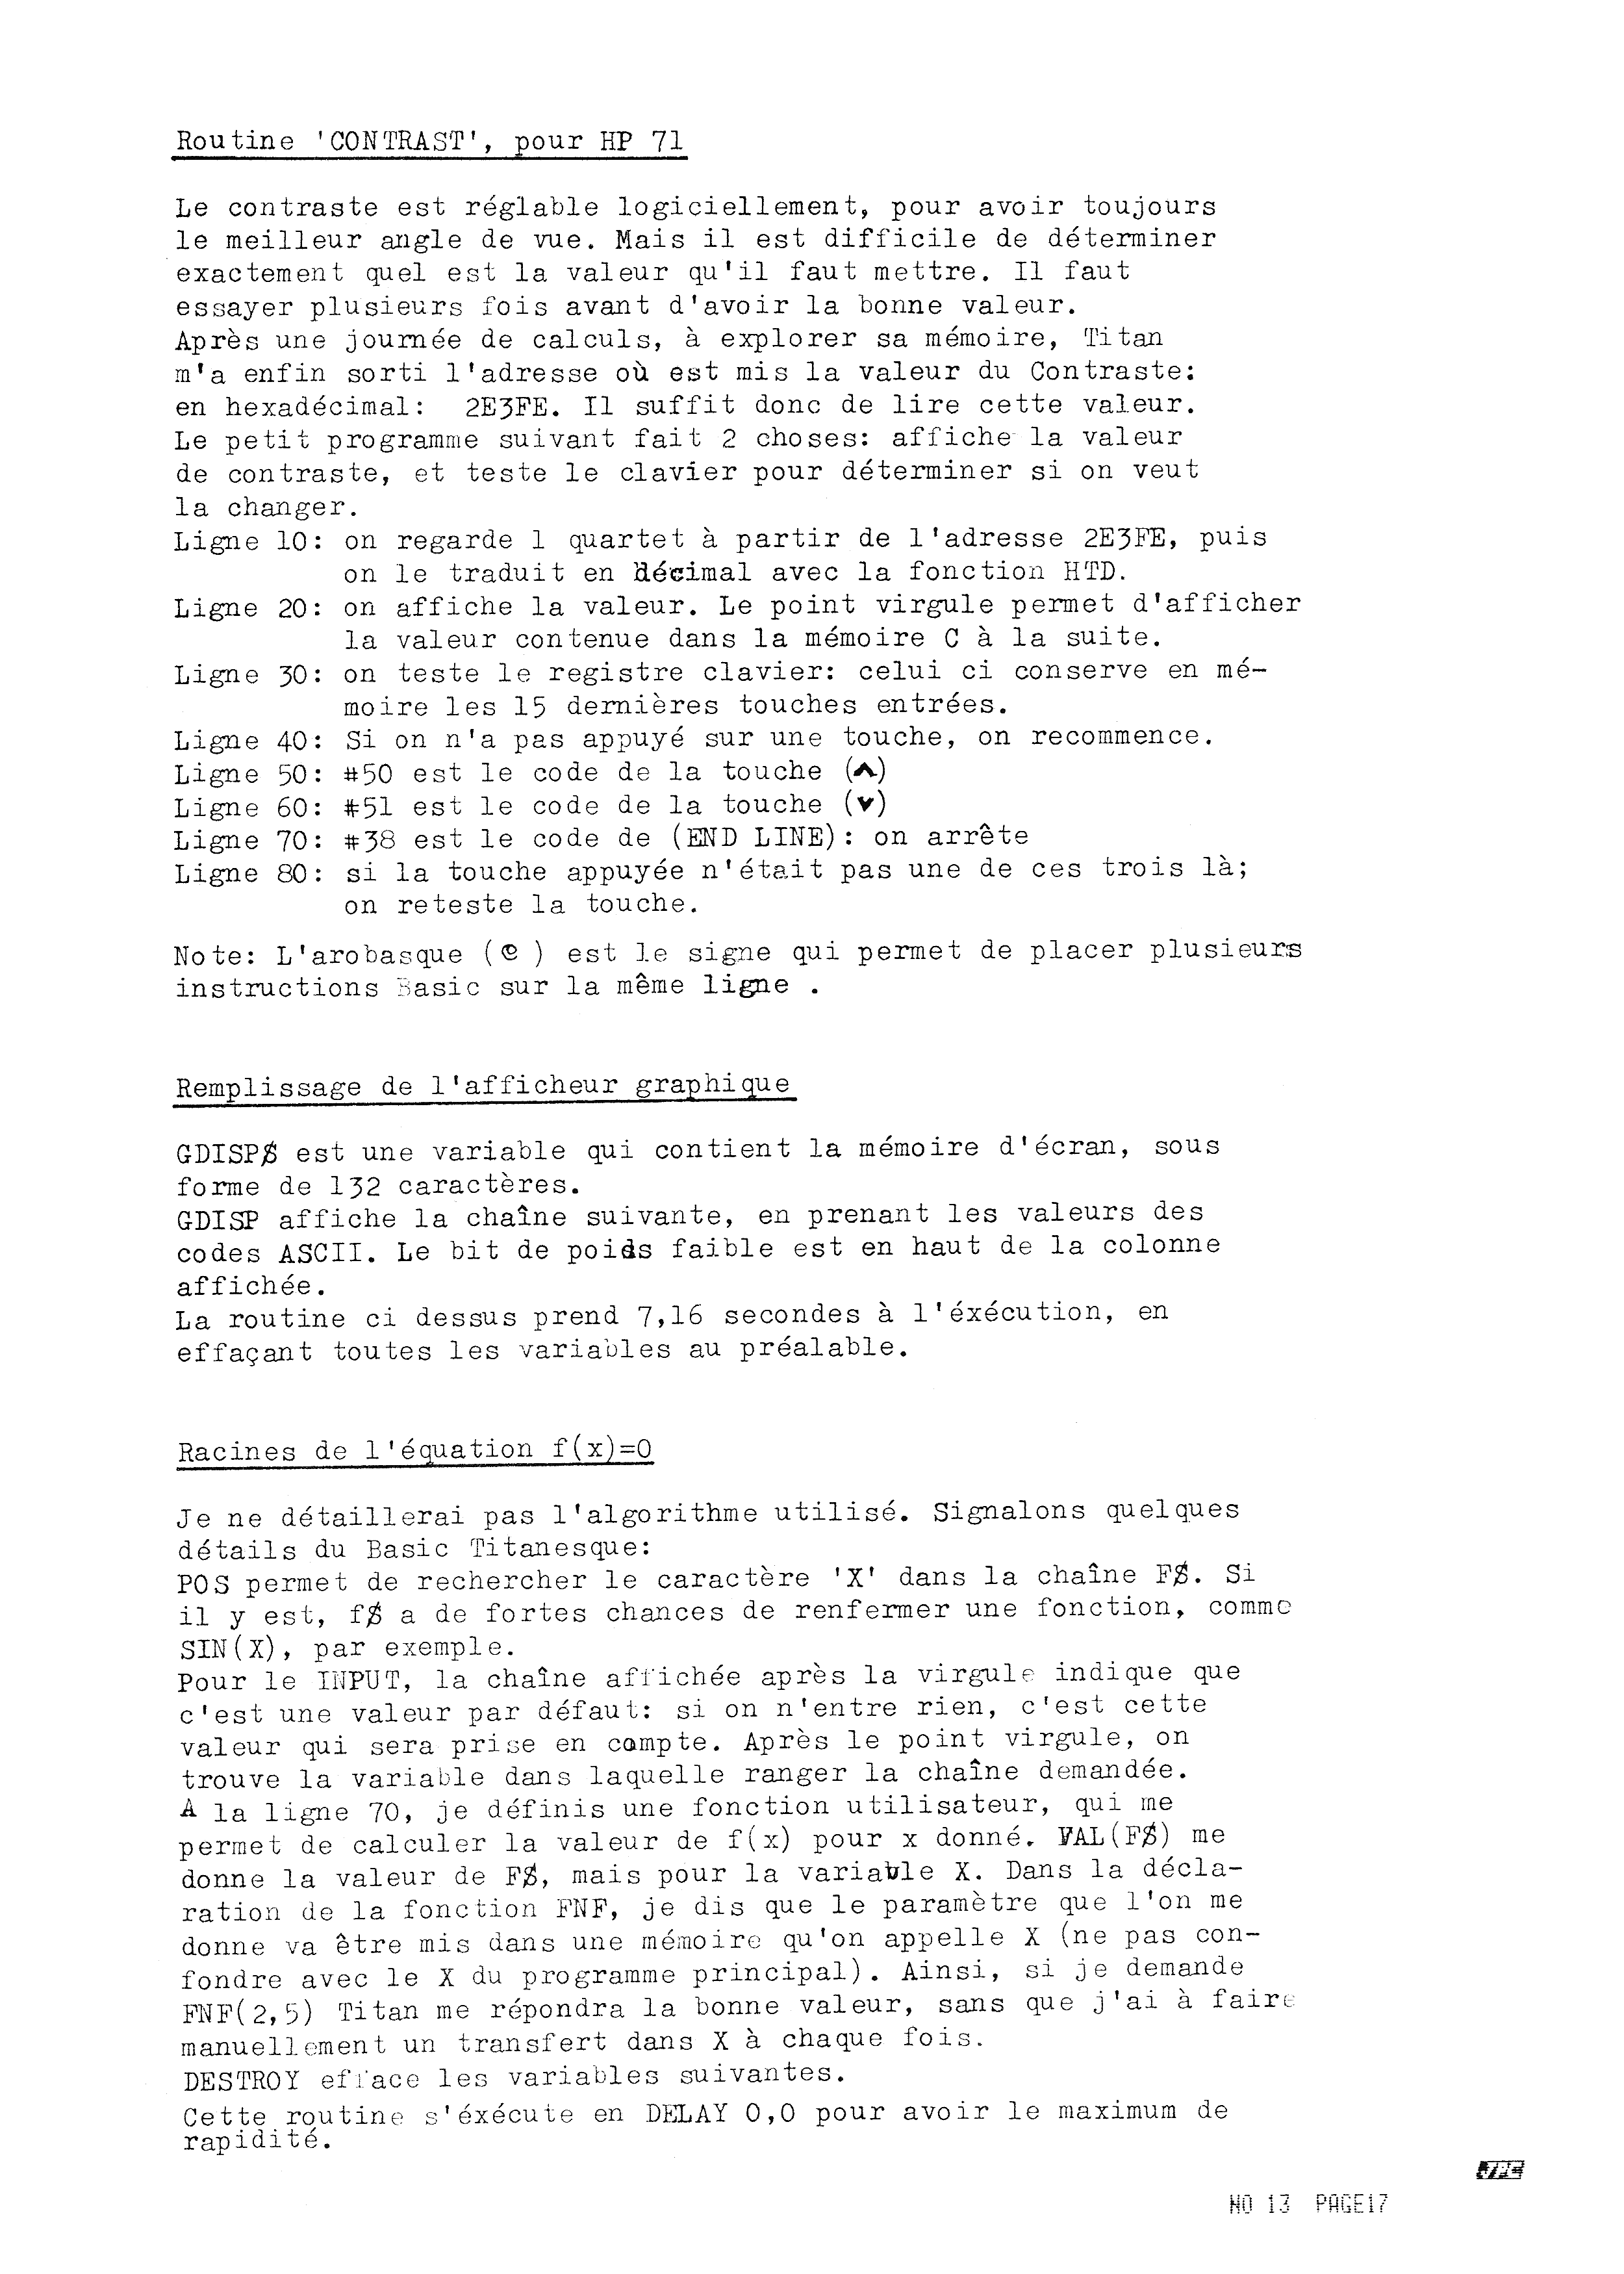 Jp-13-page-19-1000